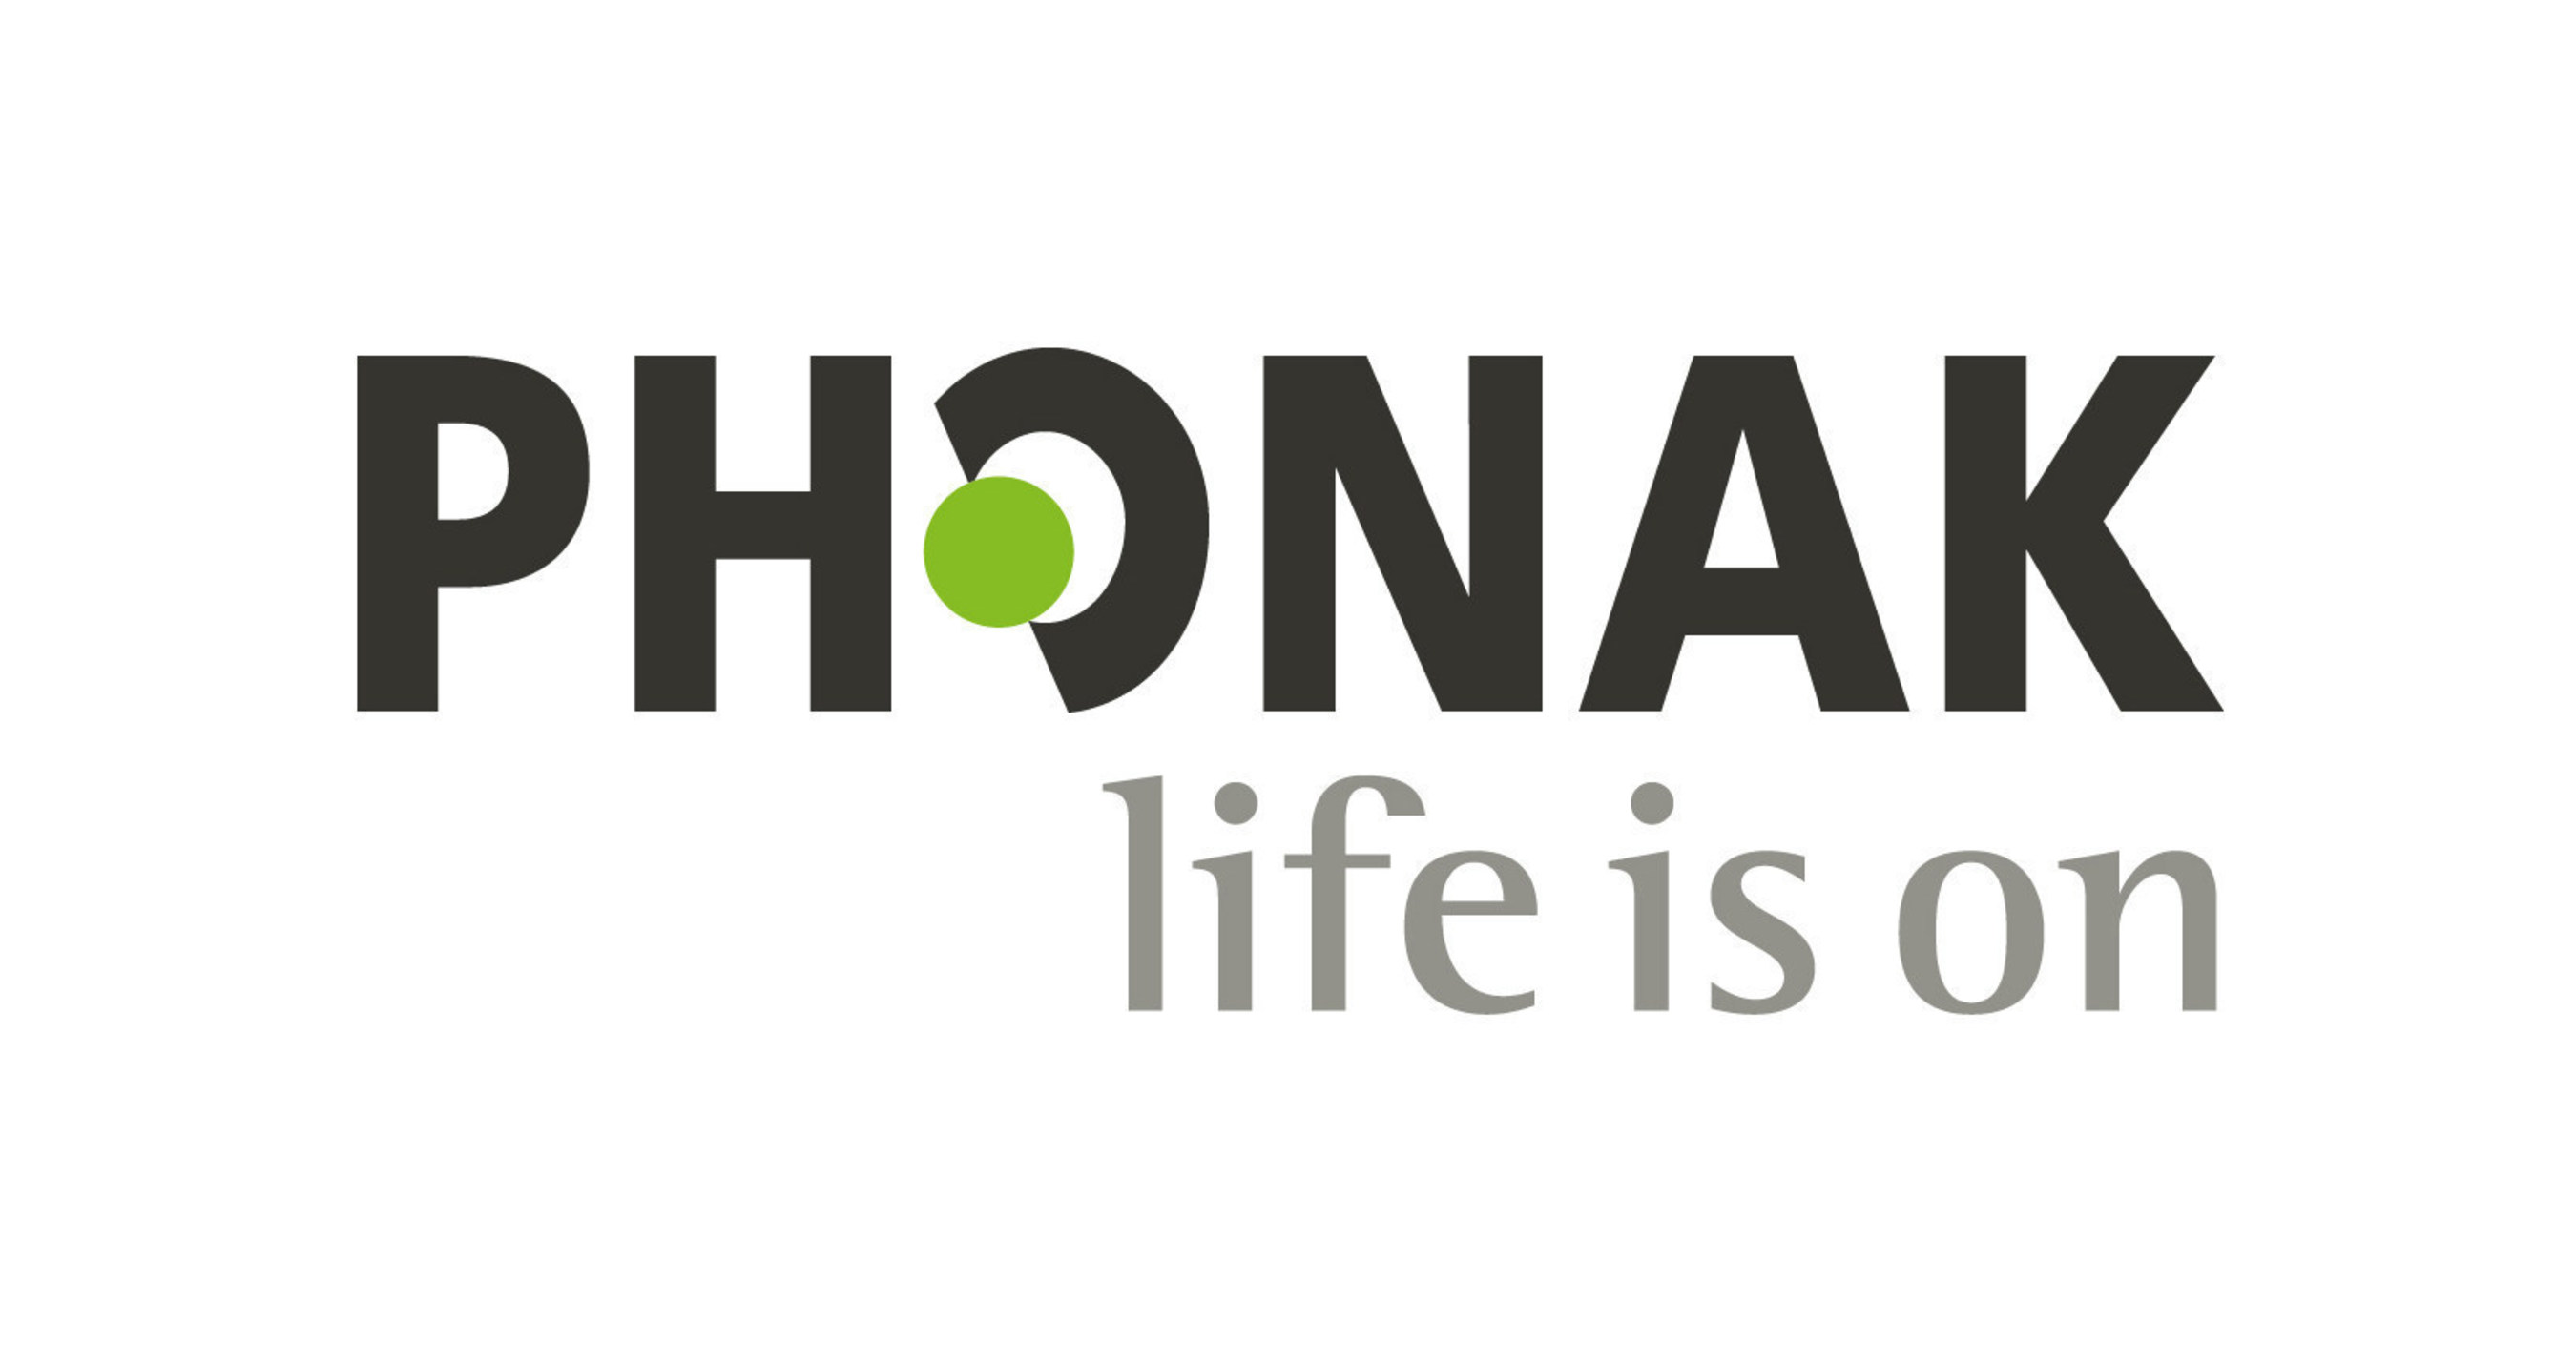 Phonak - Life is on. We are sensitive to the needs of everyone who depends on our knowledge, ideas and care. And by creatively challenging the limits of technology, we develop innovations that help people hear, understand and experience more of life's rich soundscapes. Interact freely. Communicate with confidence. Live without limit. Life is on.